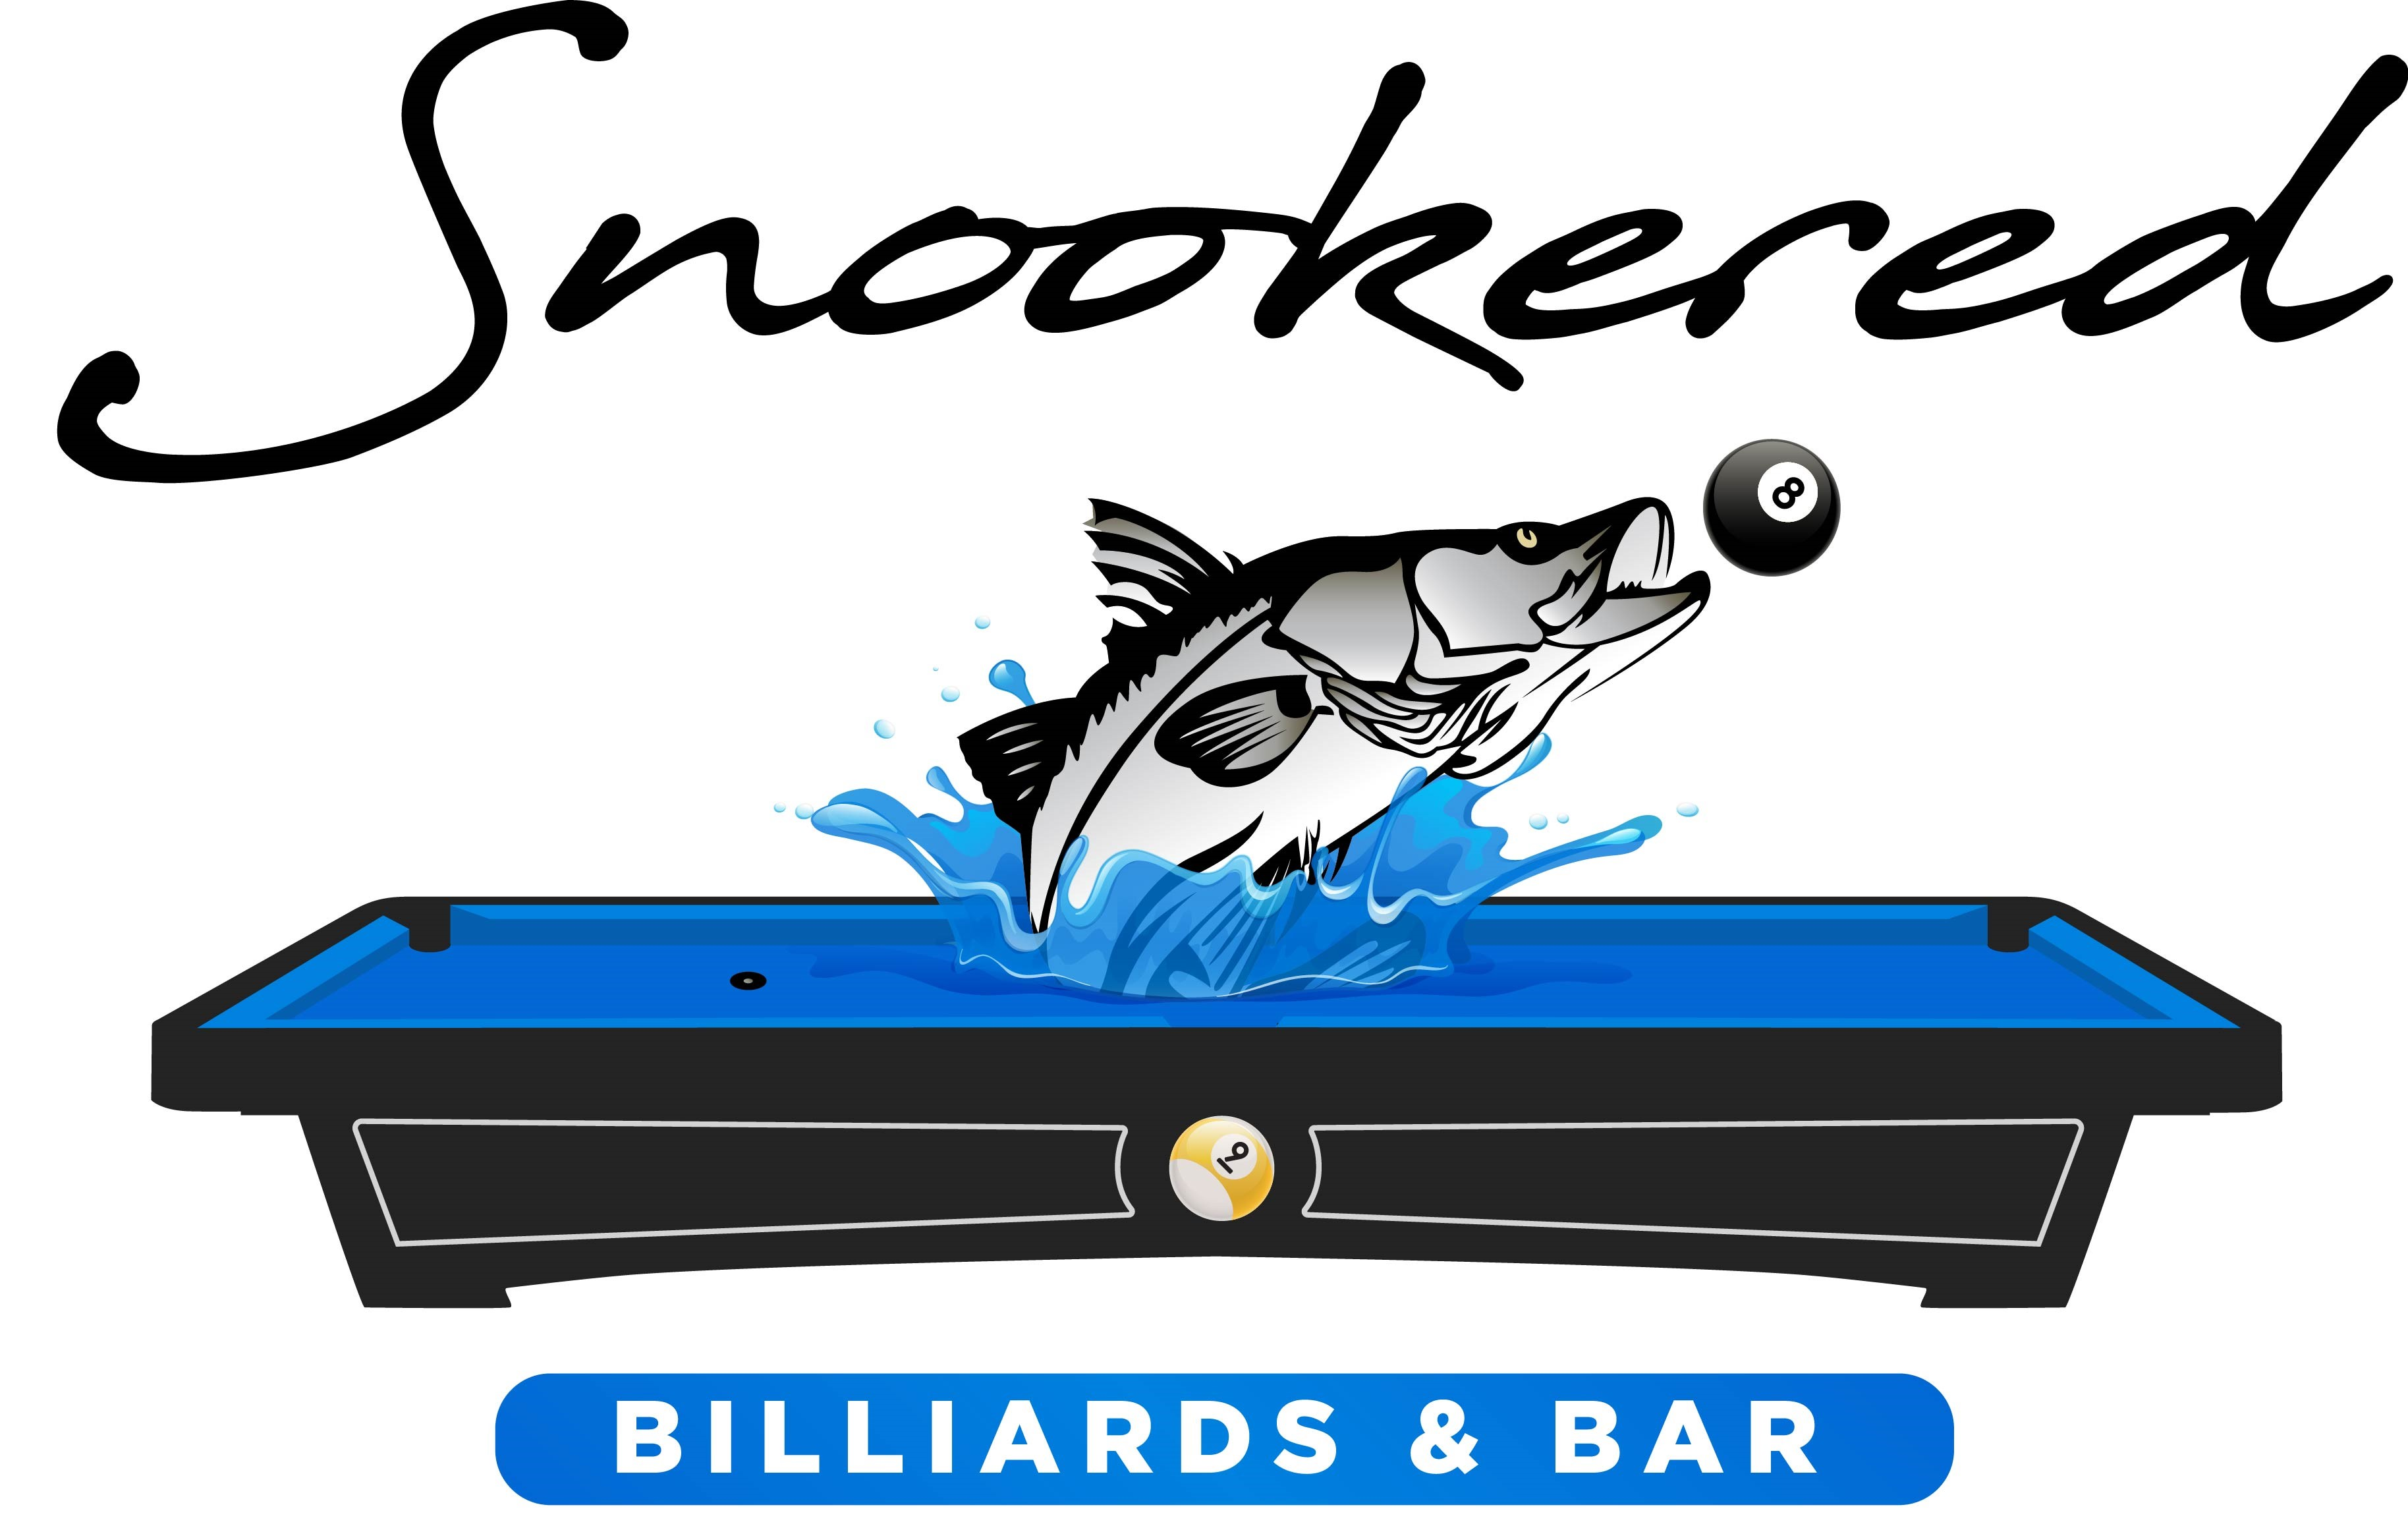 Billiards clipart pool hall. Home snookered bar